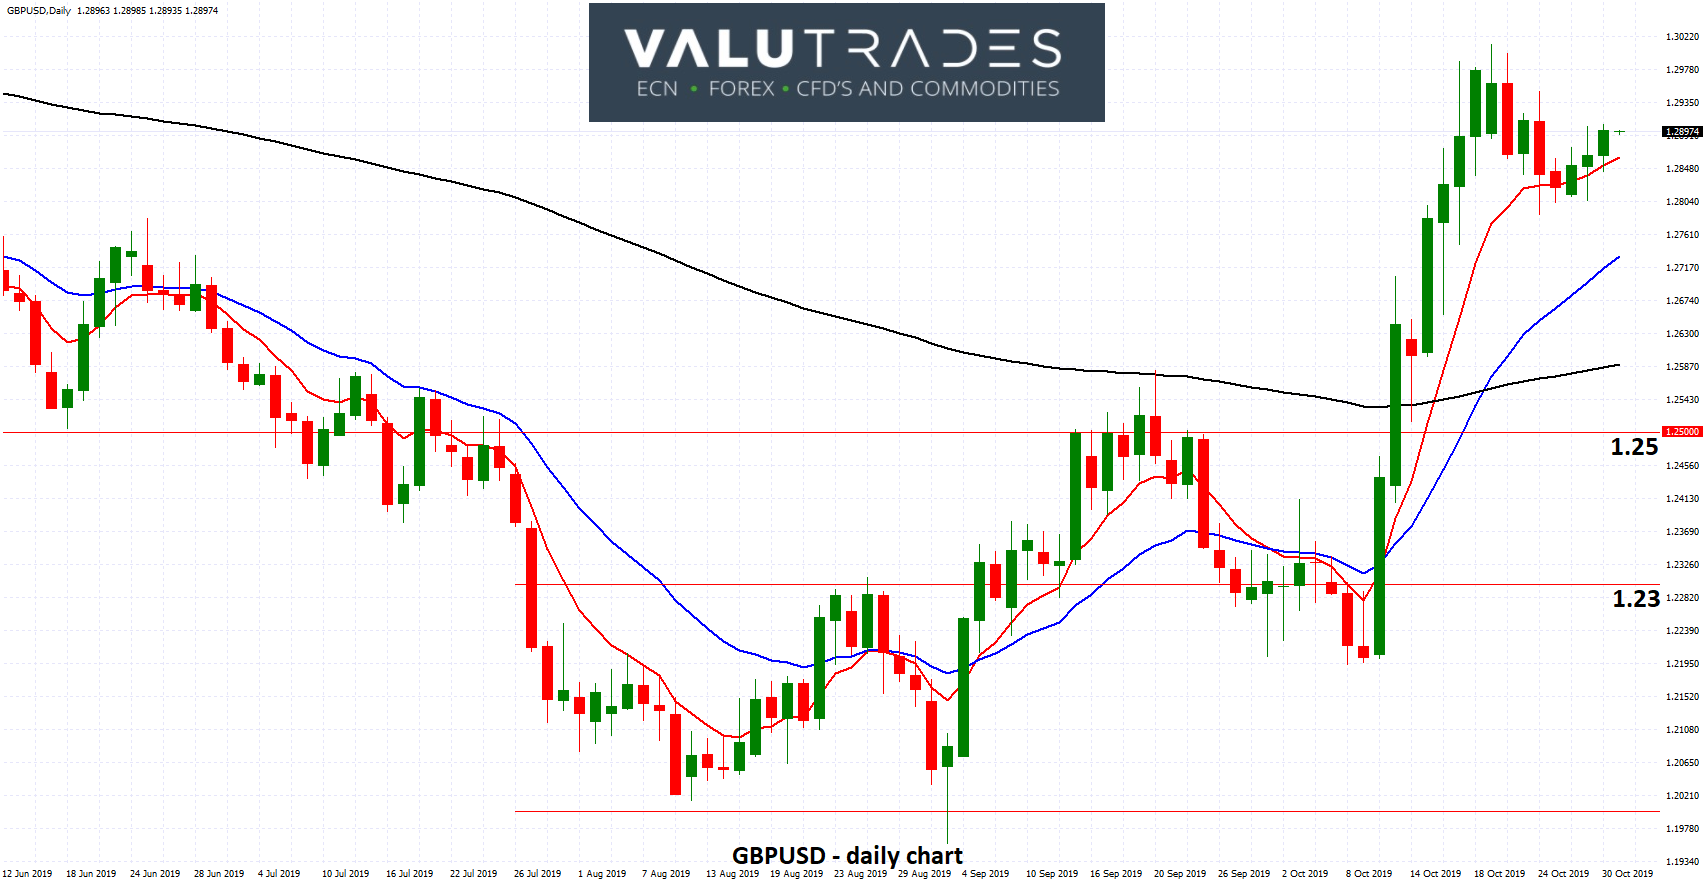 GBPUSD - Settles around 1.29 as Brexit Lingers On